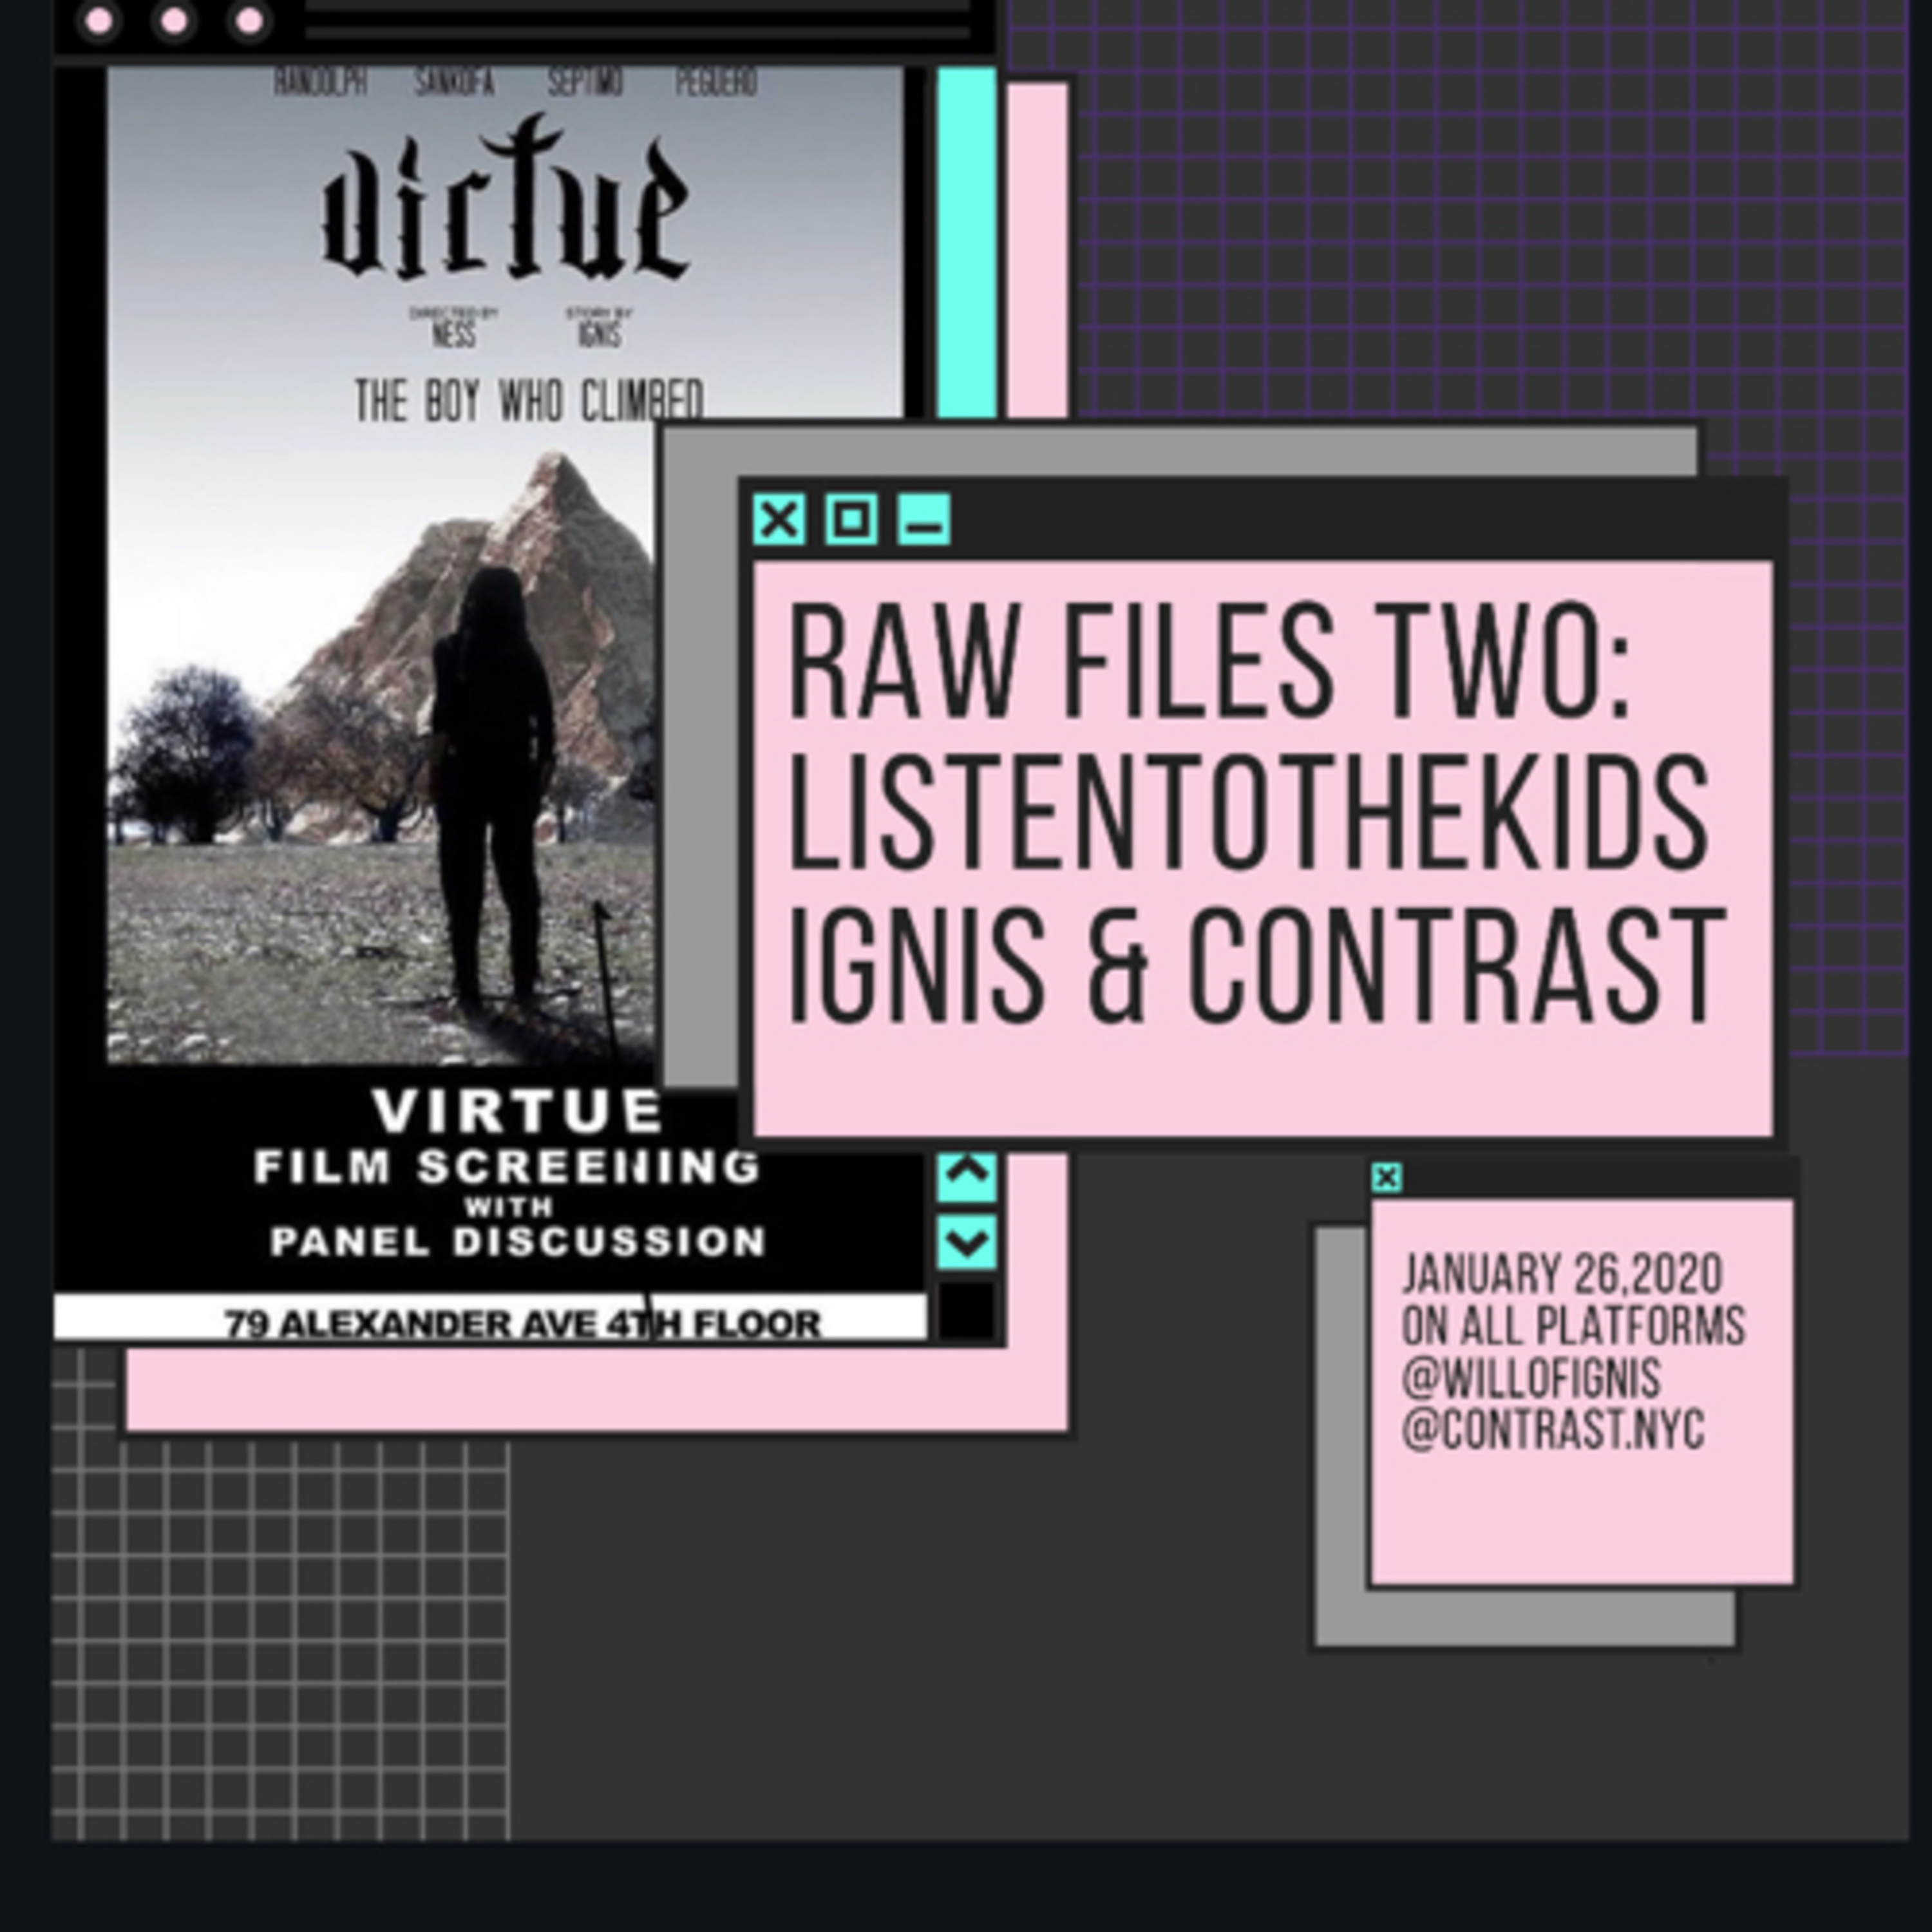 Raw files Two : Ignis & Contrast